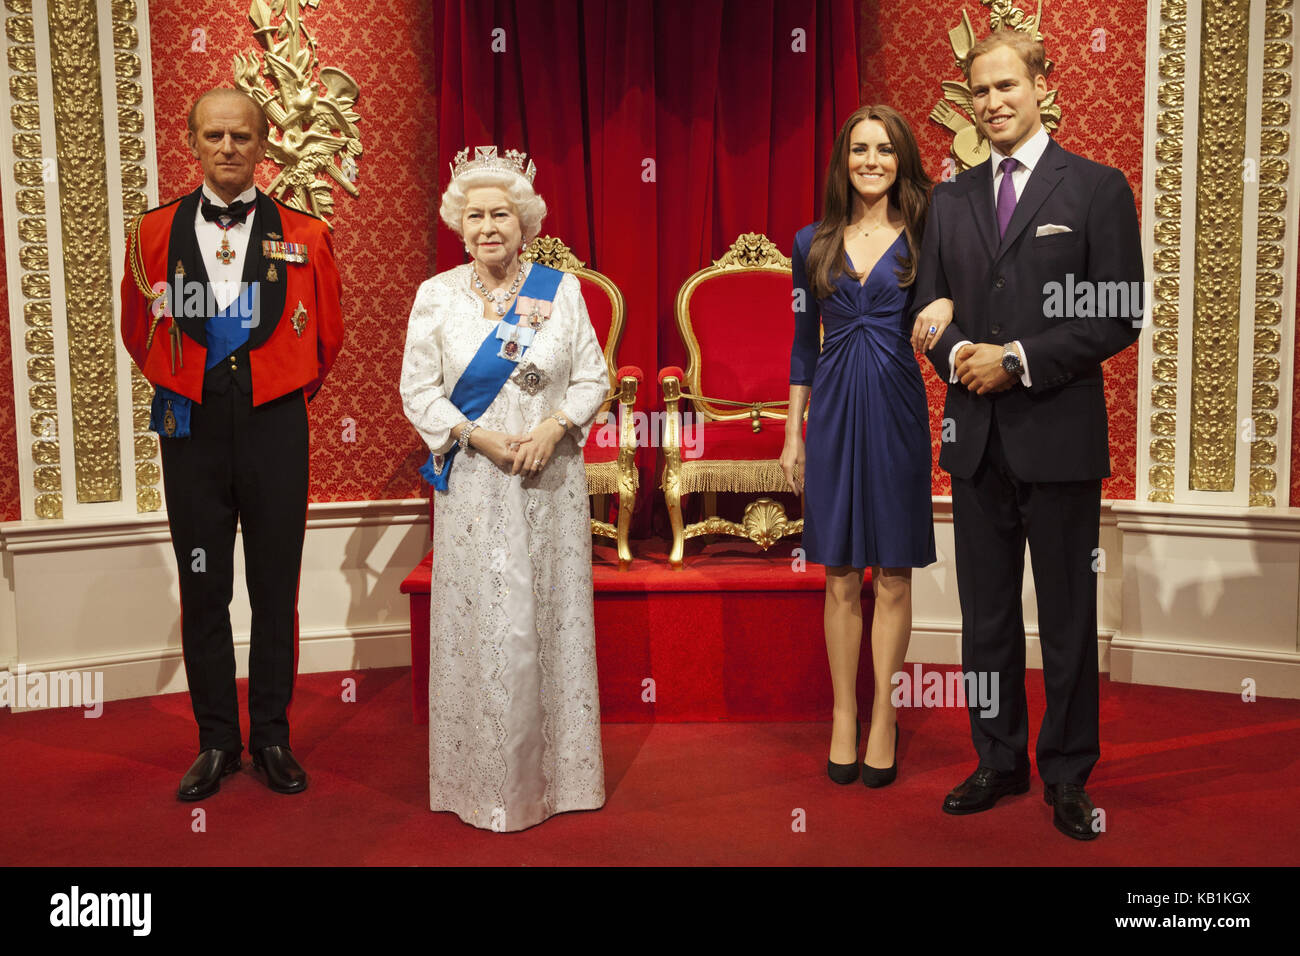 England, London, Madame Tussauds, wax figures, members of the British royal family, - Stock Image